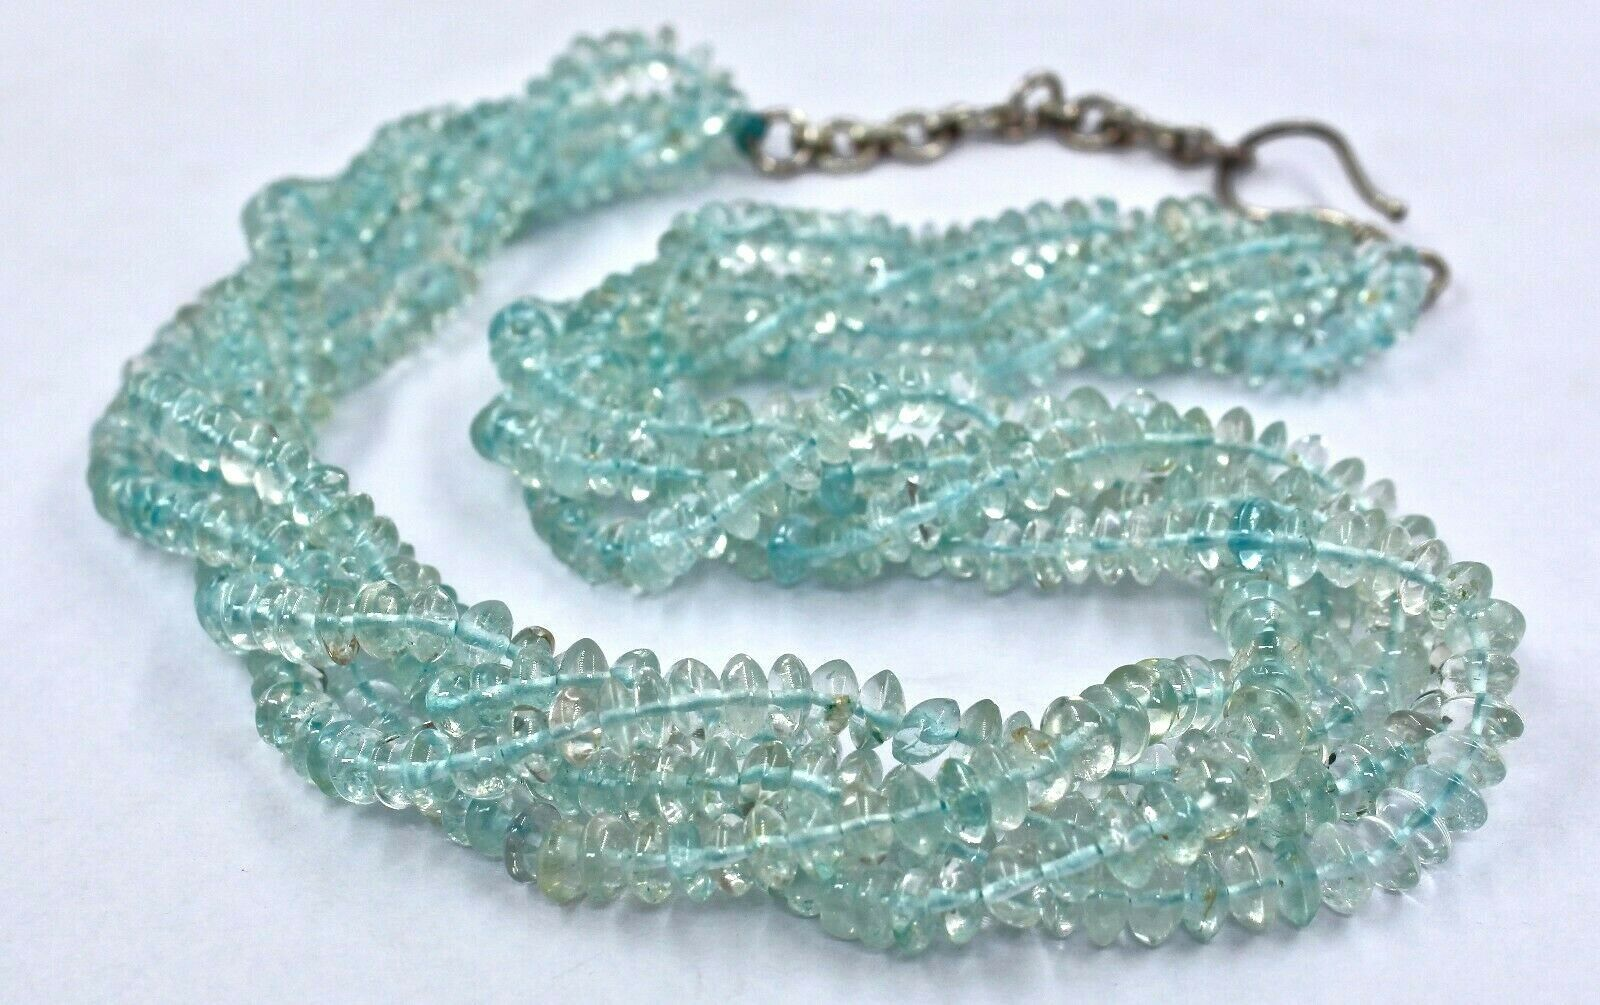 CLASSIC BLUE TOPAZ ROUND BUTTON BEADS 3 LINE 568 CARATS GEMSTONE SILVER NECKLACE